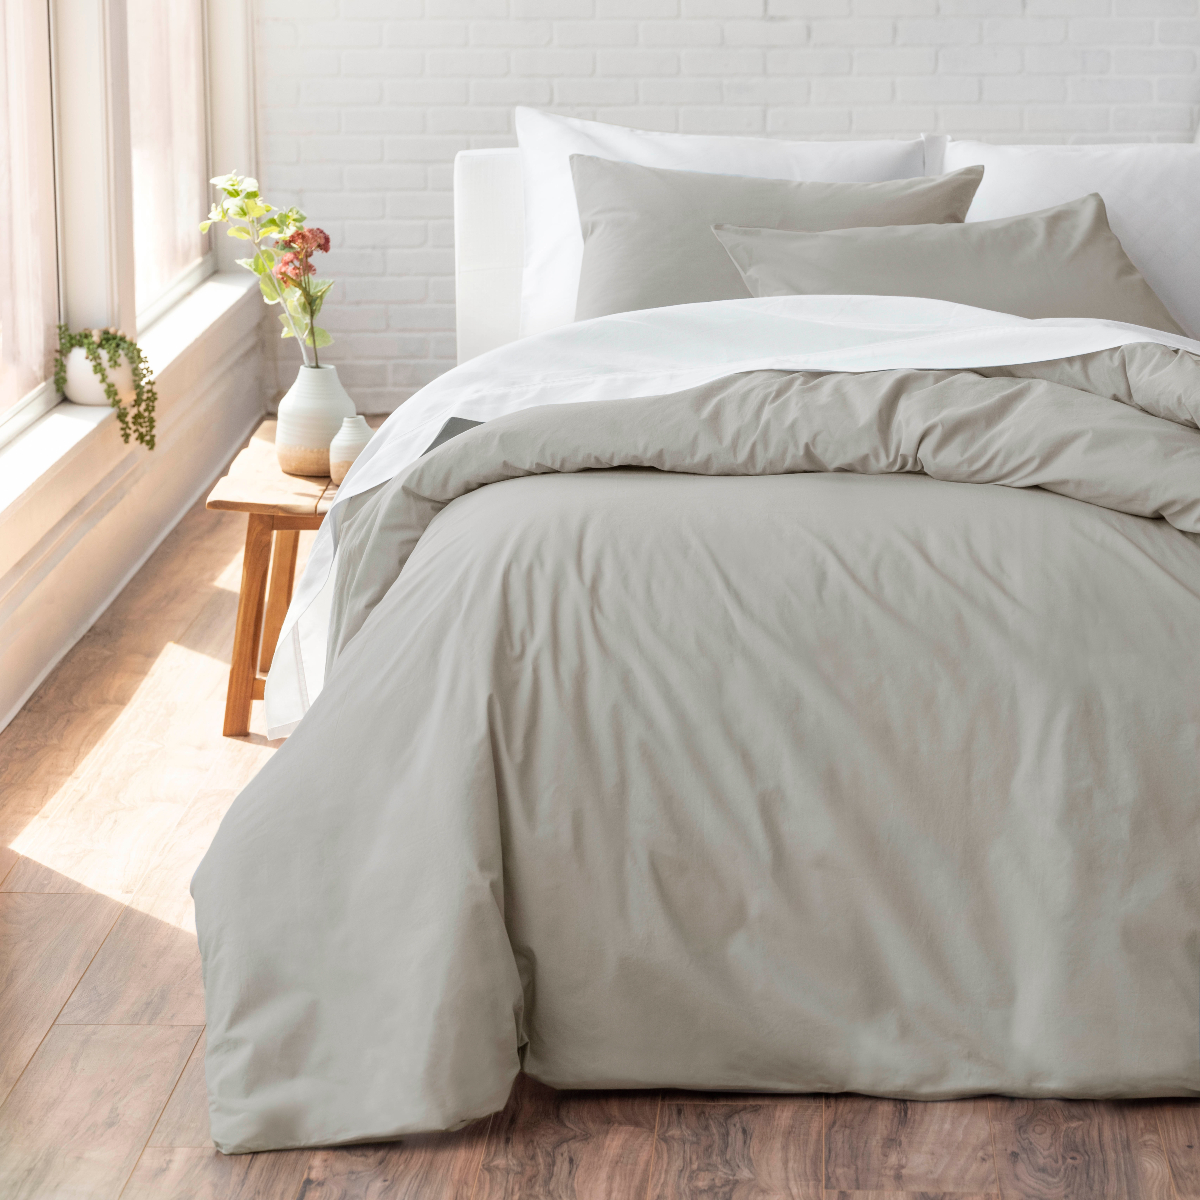 Home textile producer Welspun India's new sustainable home goods line uses DuPont Biomaterials' Sorona partially plant-based fibers.